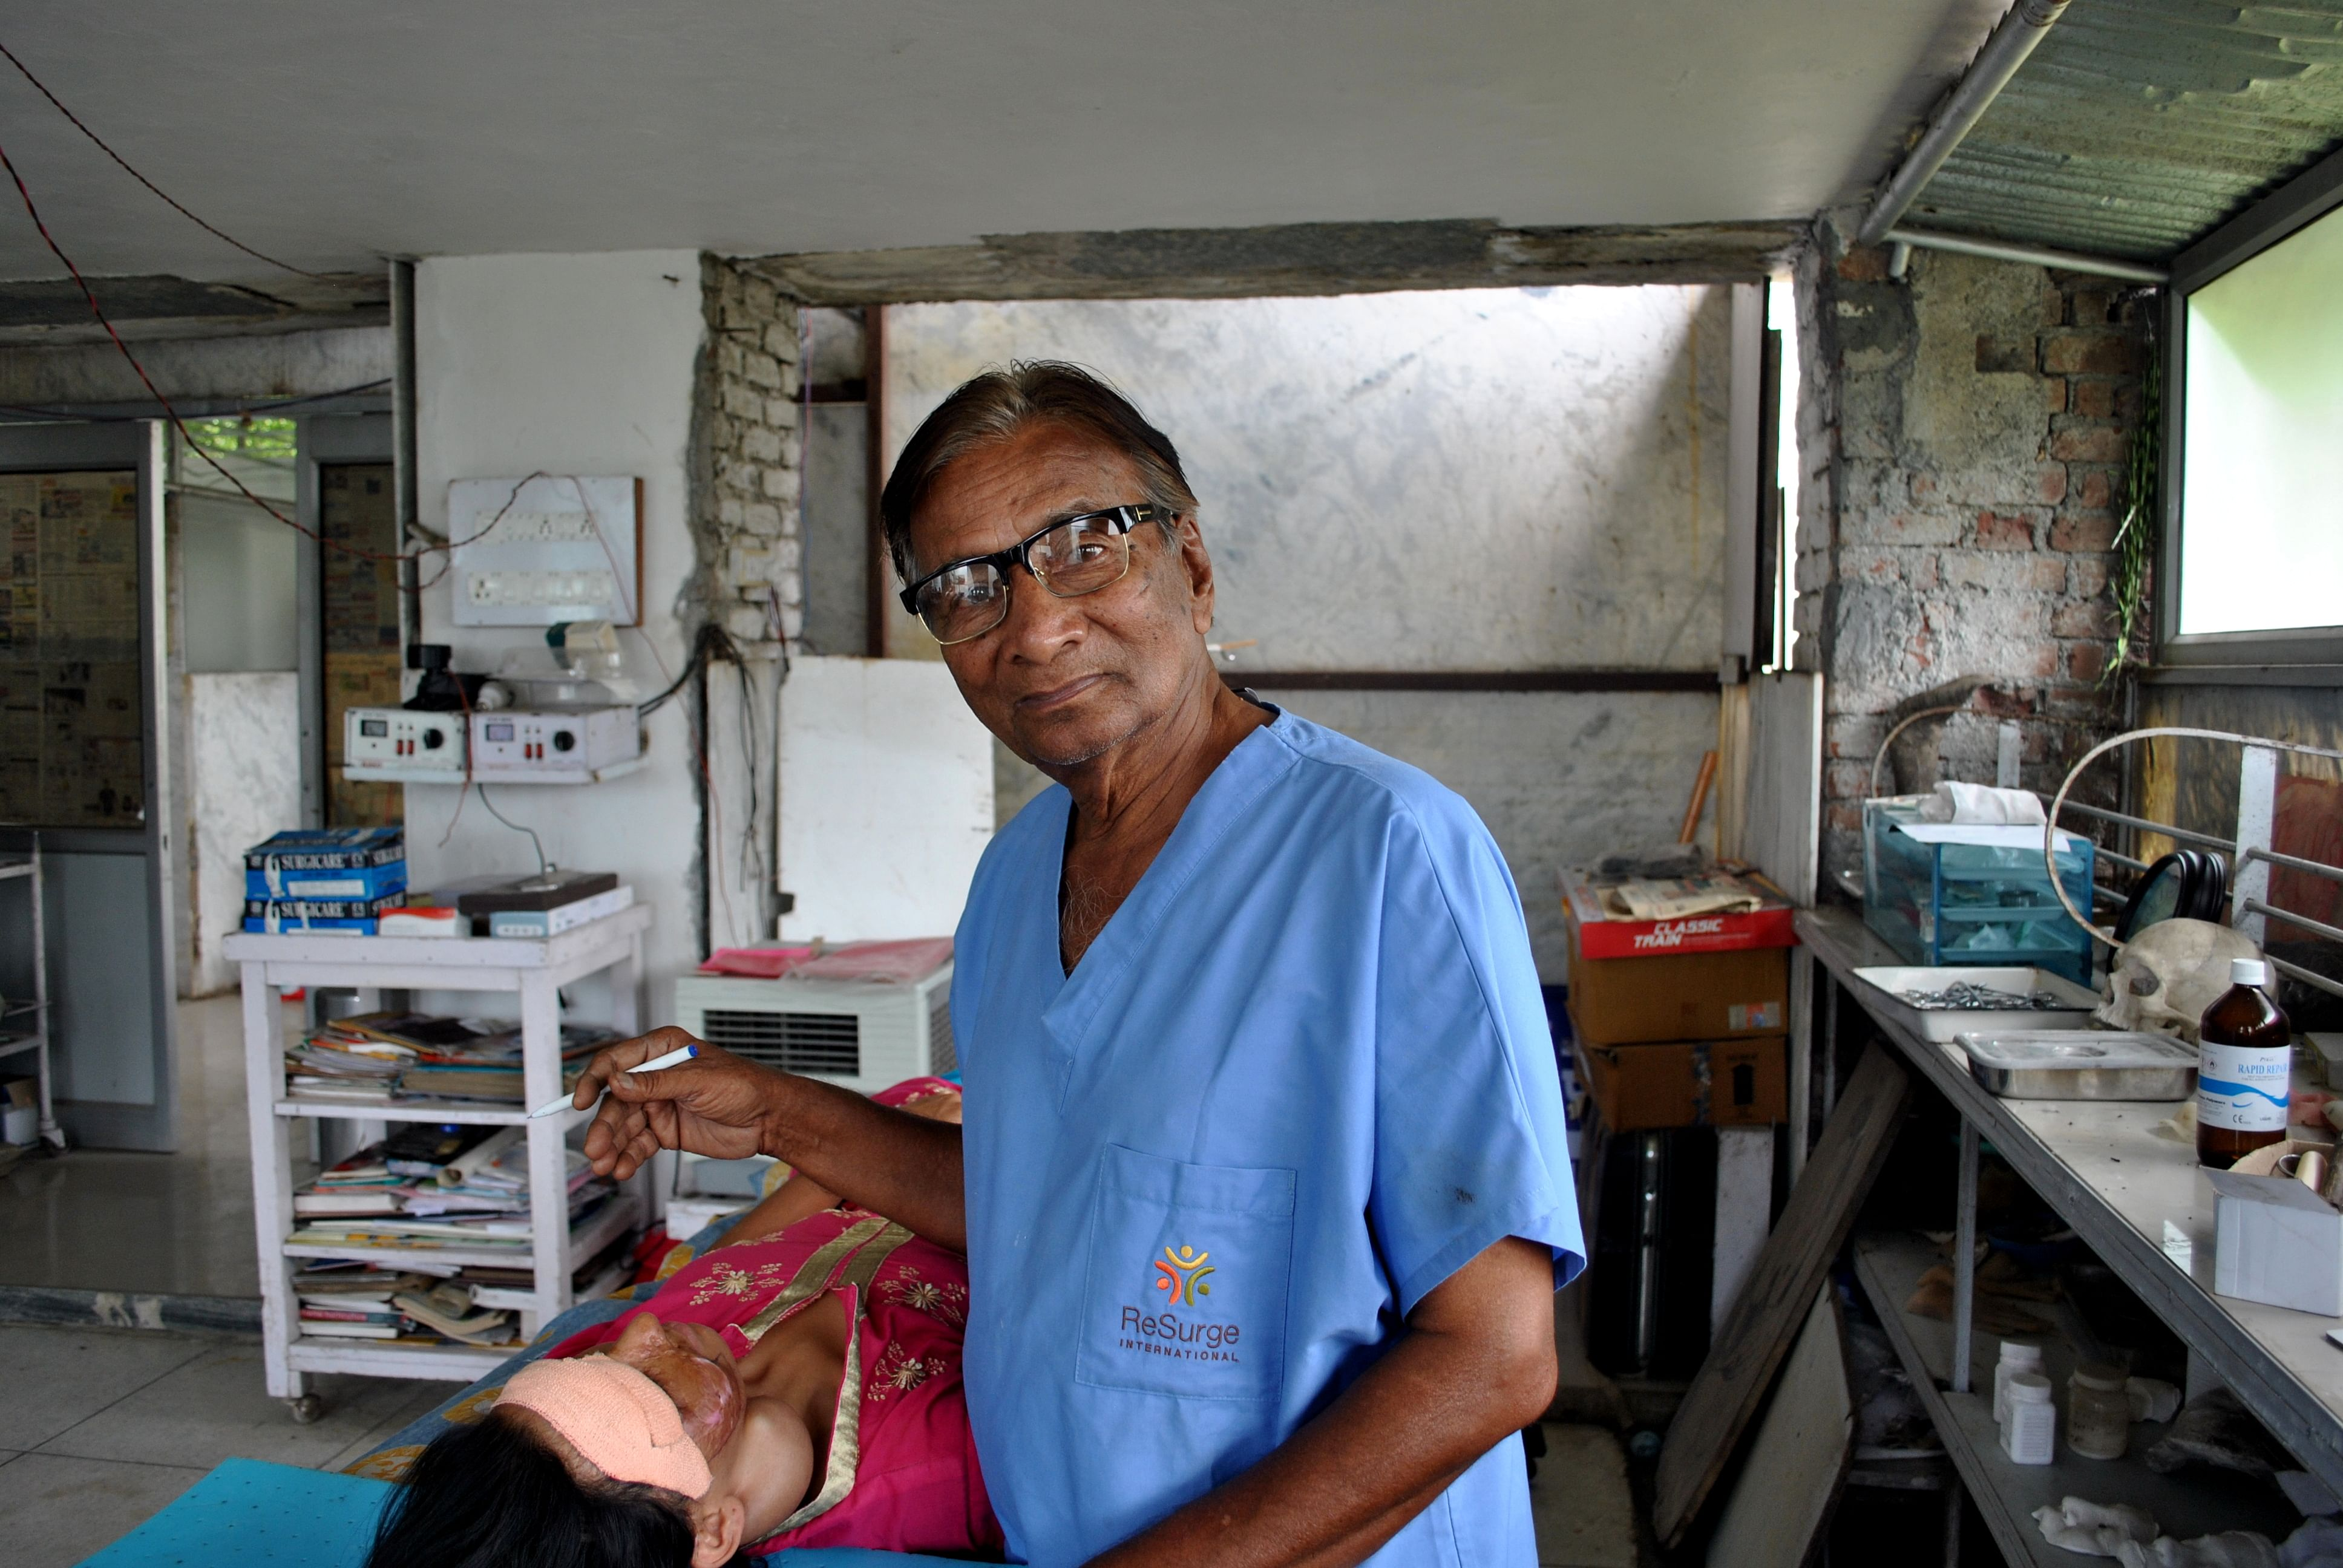 Meet Malsi Yogi: This 80-Year-Old Operates on 500 Burn Victims Each Year for Free